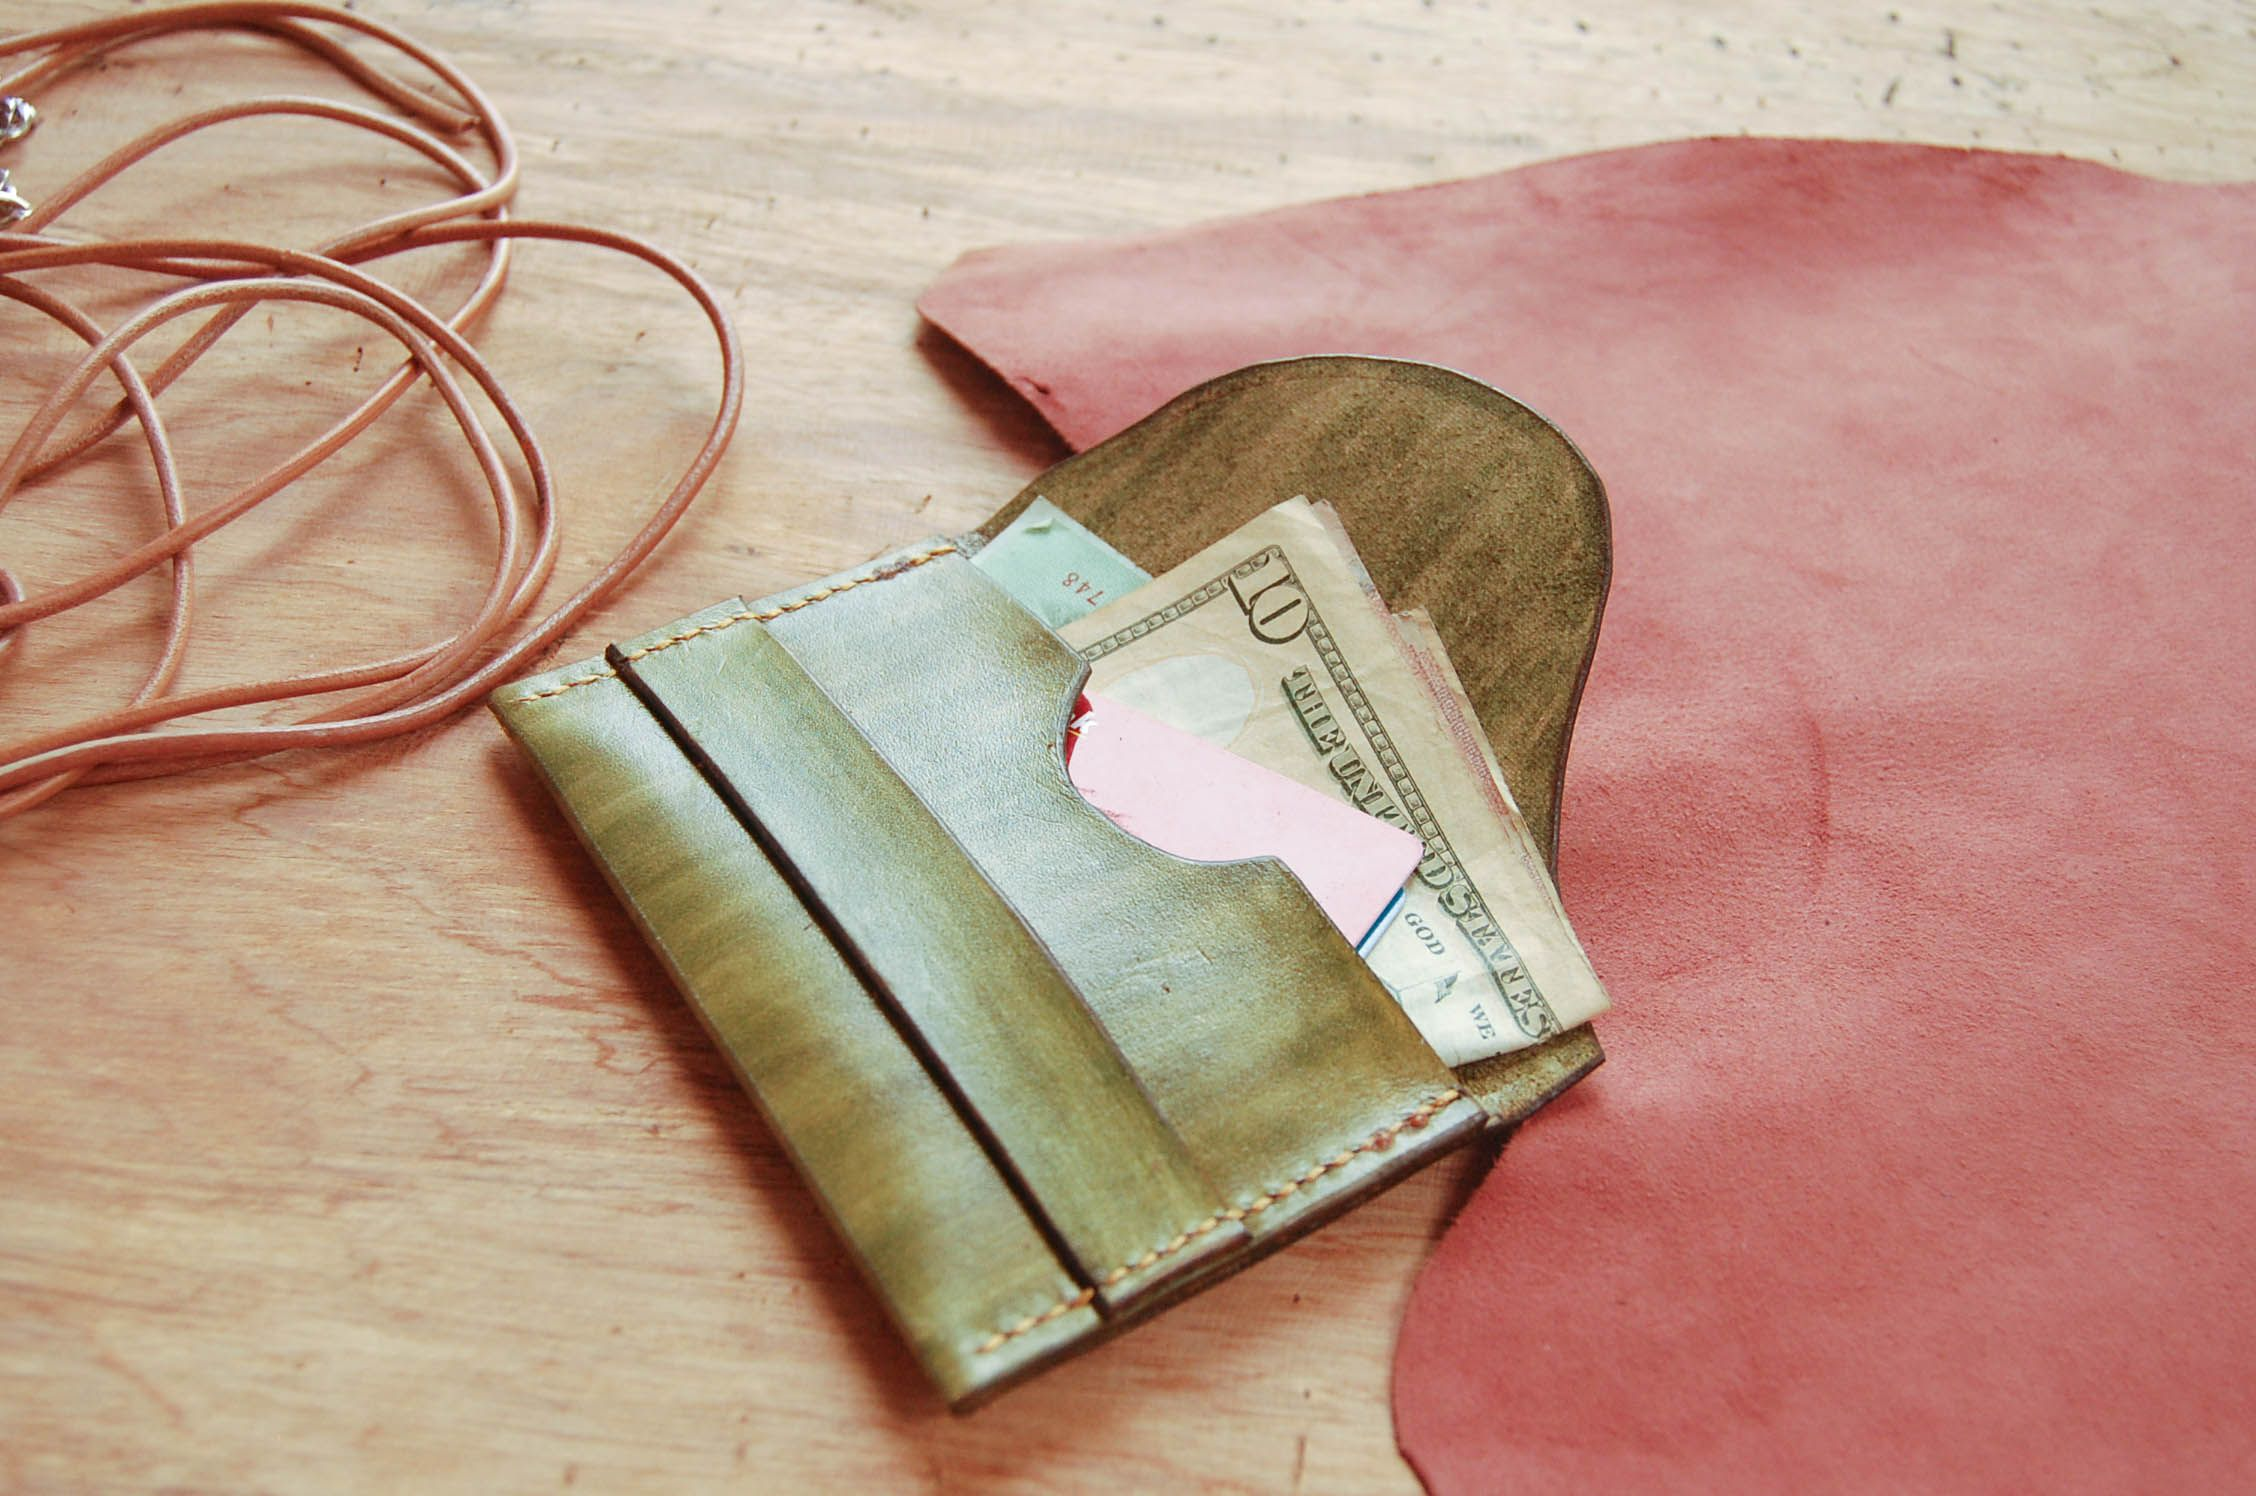 Leather Crafts By Unimistore Are Hand Sewn Veg Leather Items Like